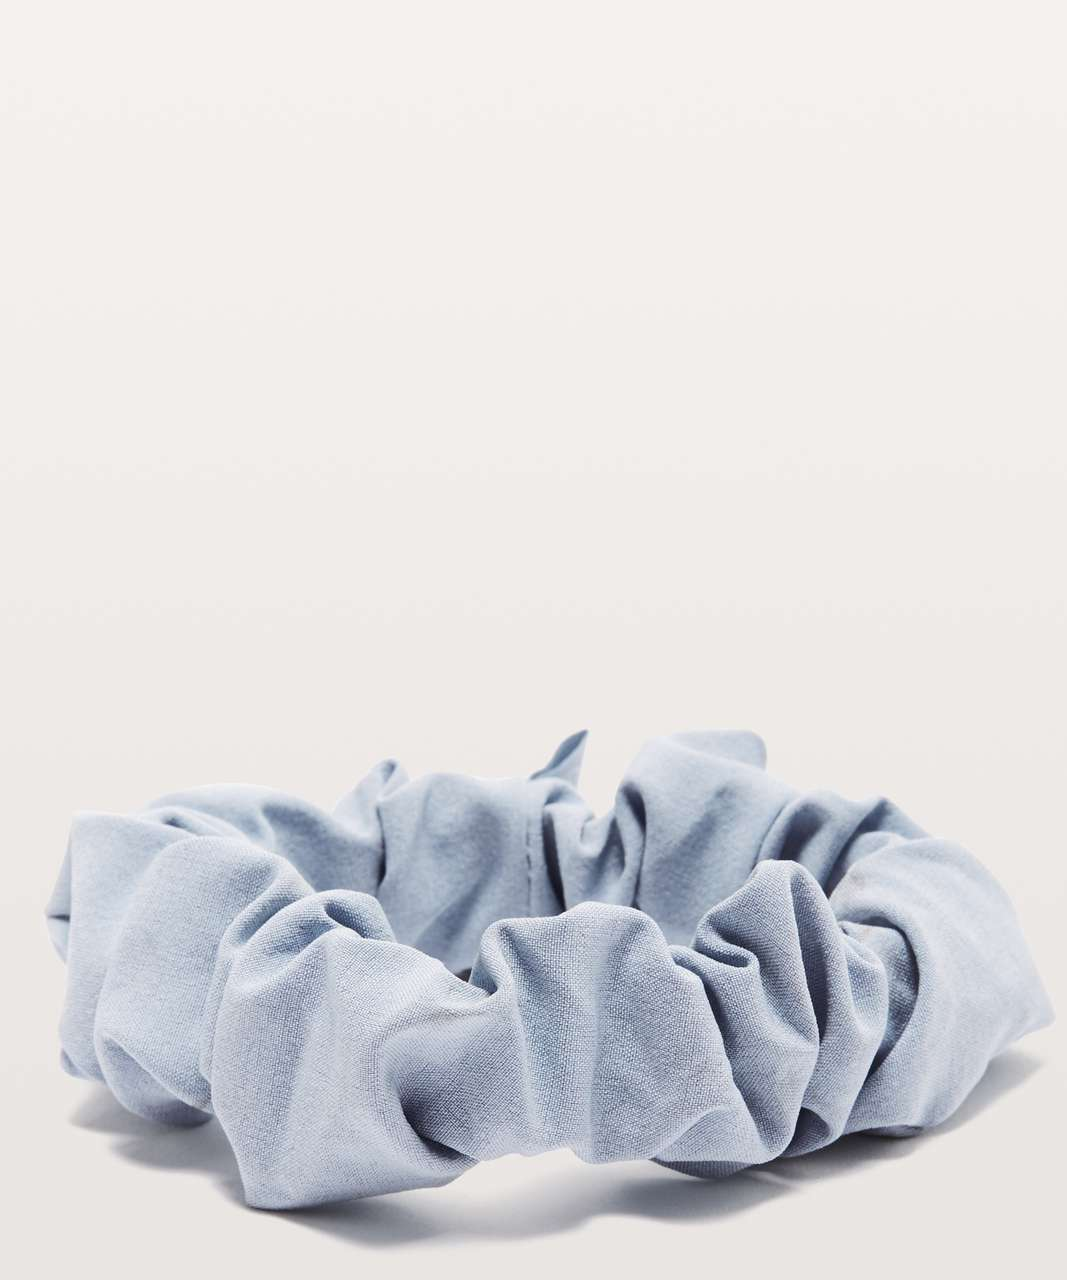 Lululemon Uplifting Scrunchie - Concrete Blue